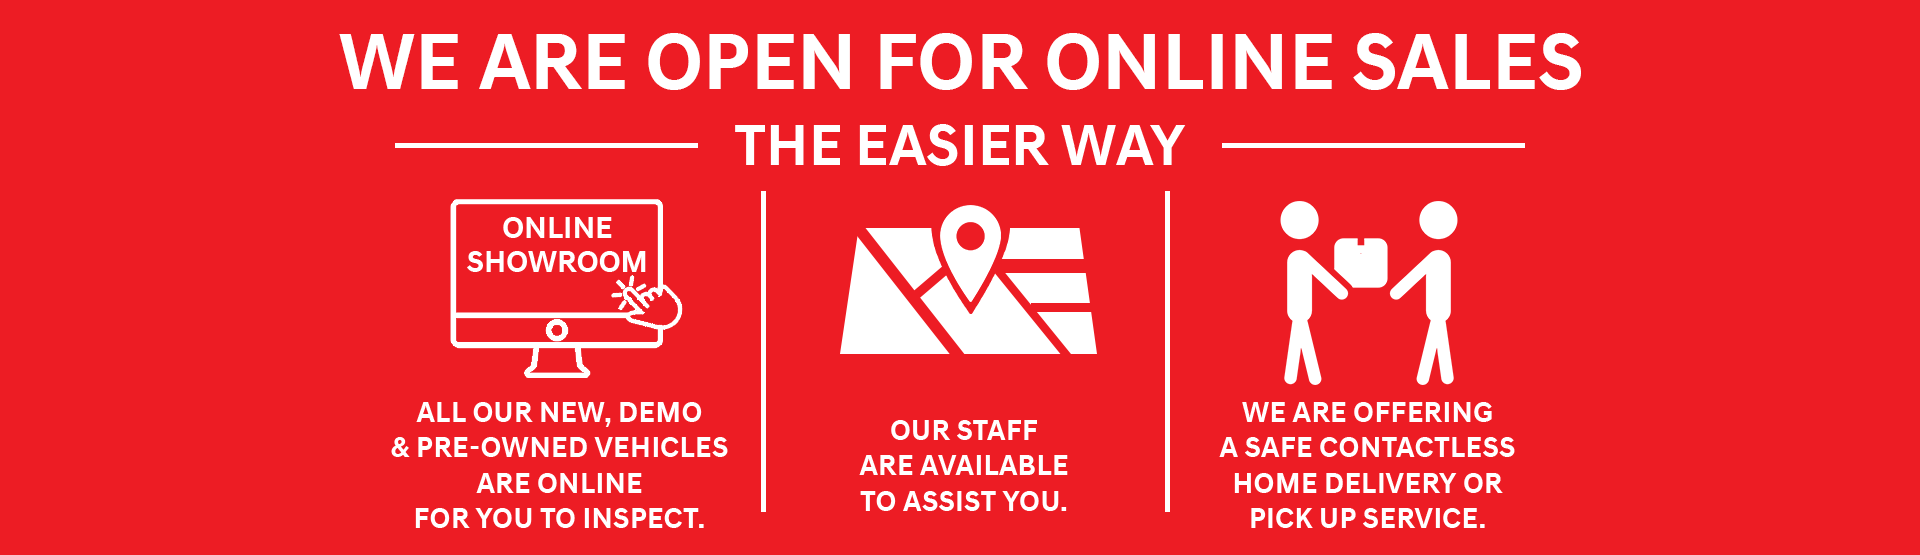 Dandenong Nissan - We are open online